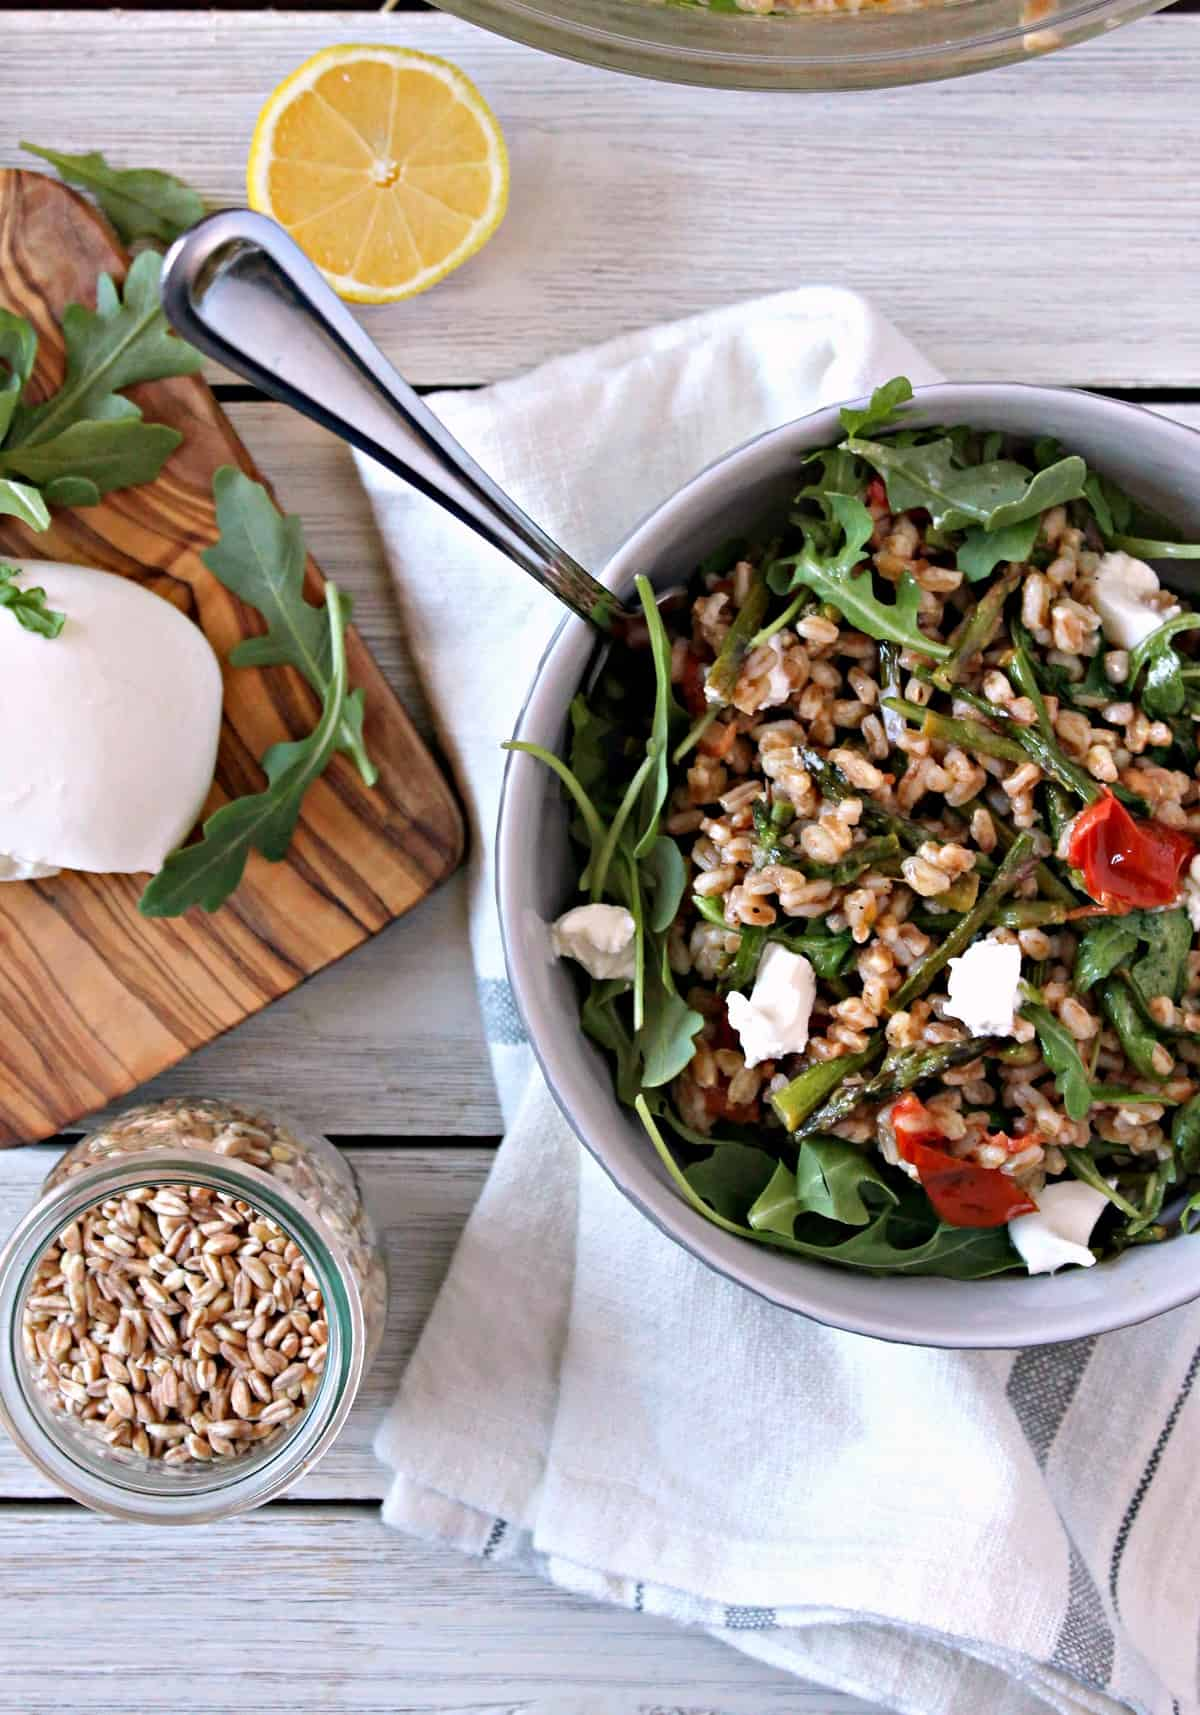 This light and fresh Springtime Farro Salad is topped with creamy burrata cheese and sun dried tomatoes